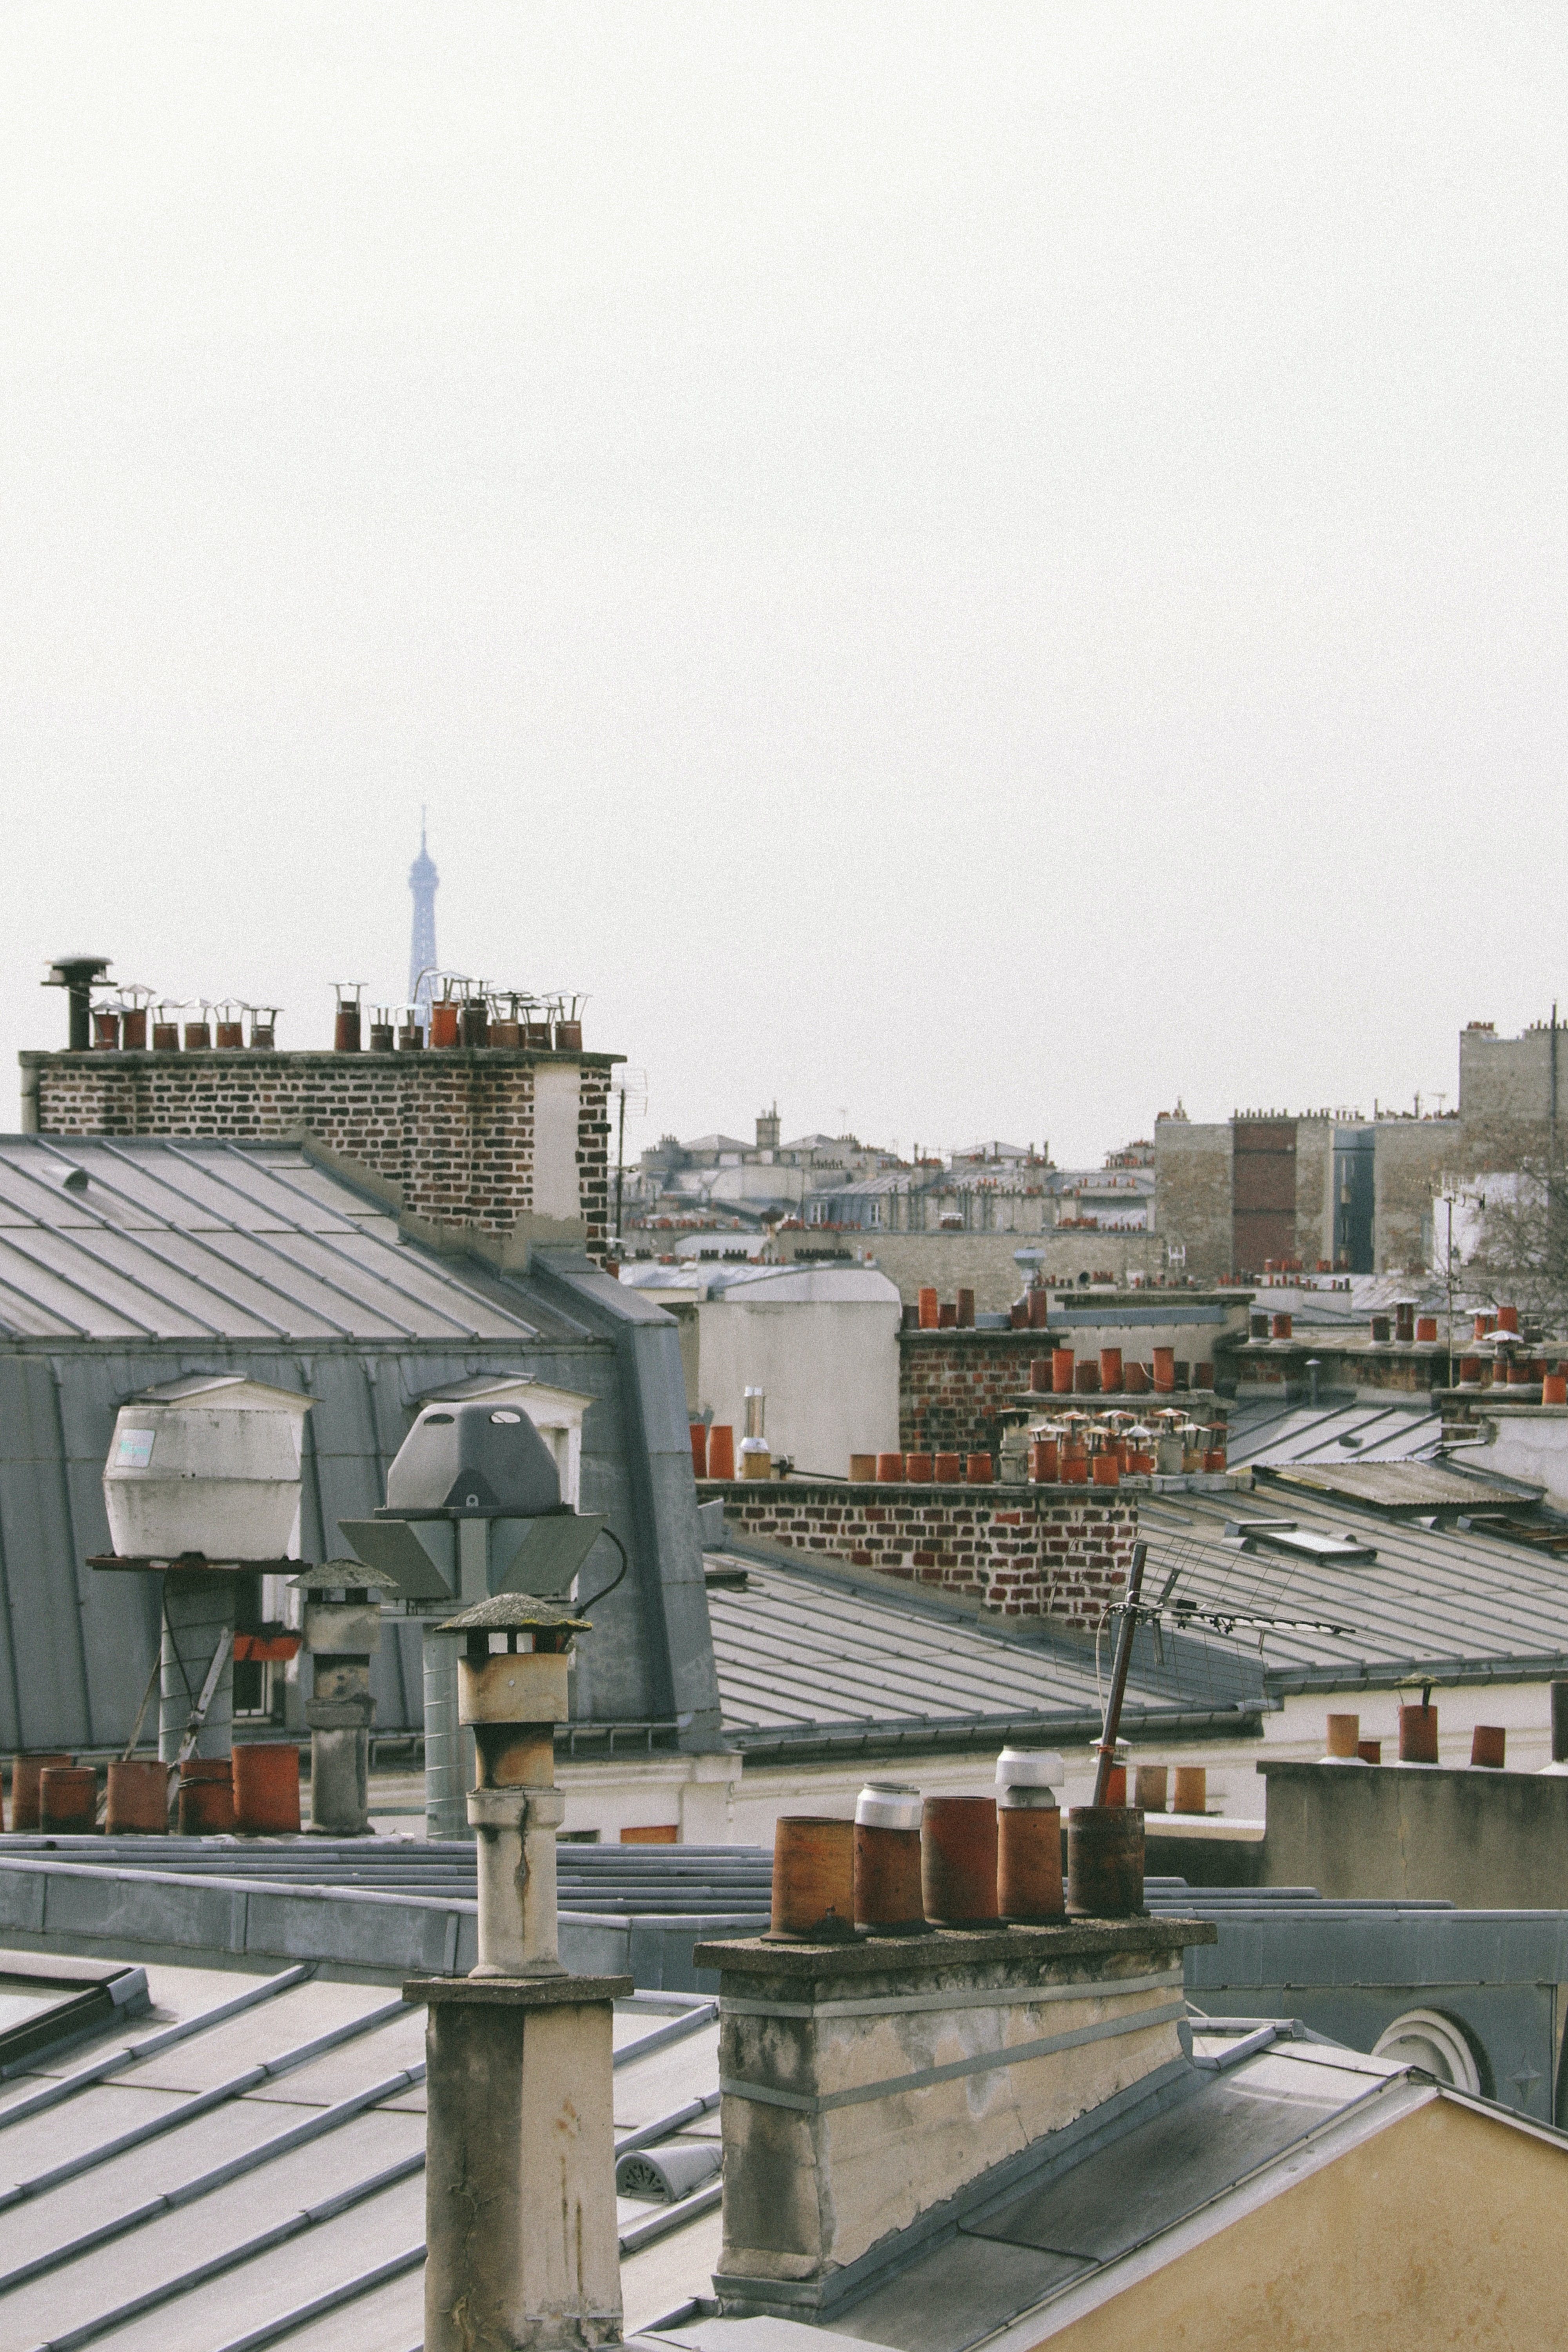 View of rooftops in Paris with brown chimneys